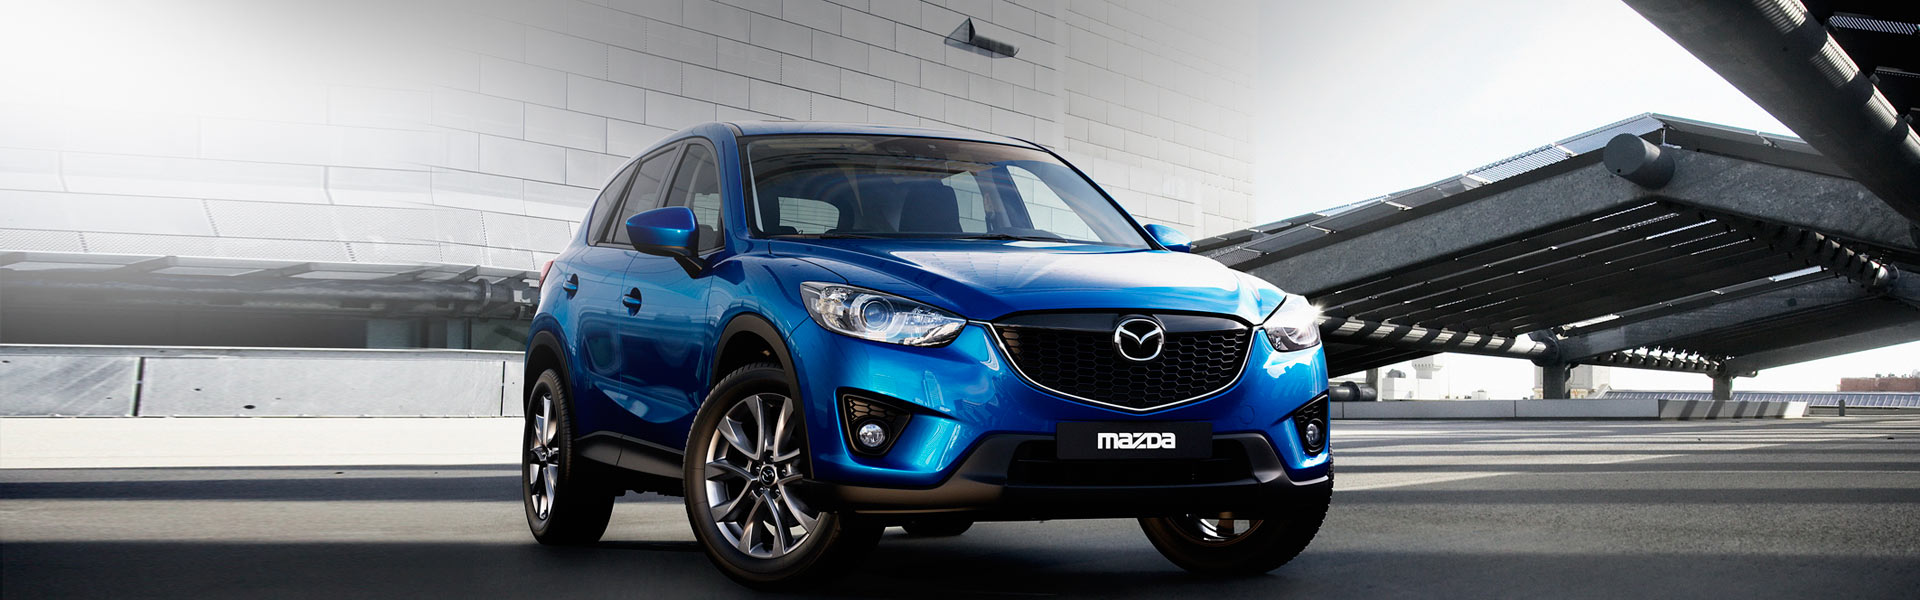 Сервис Mazda Proceed Marvie